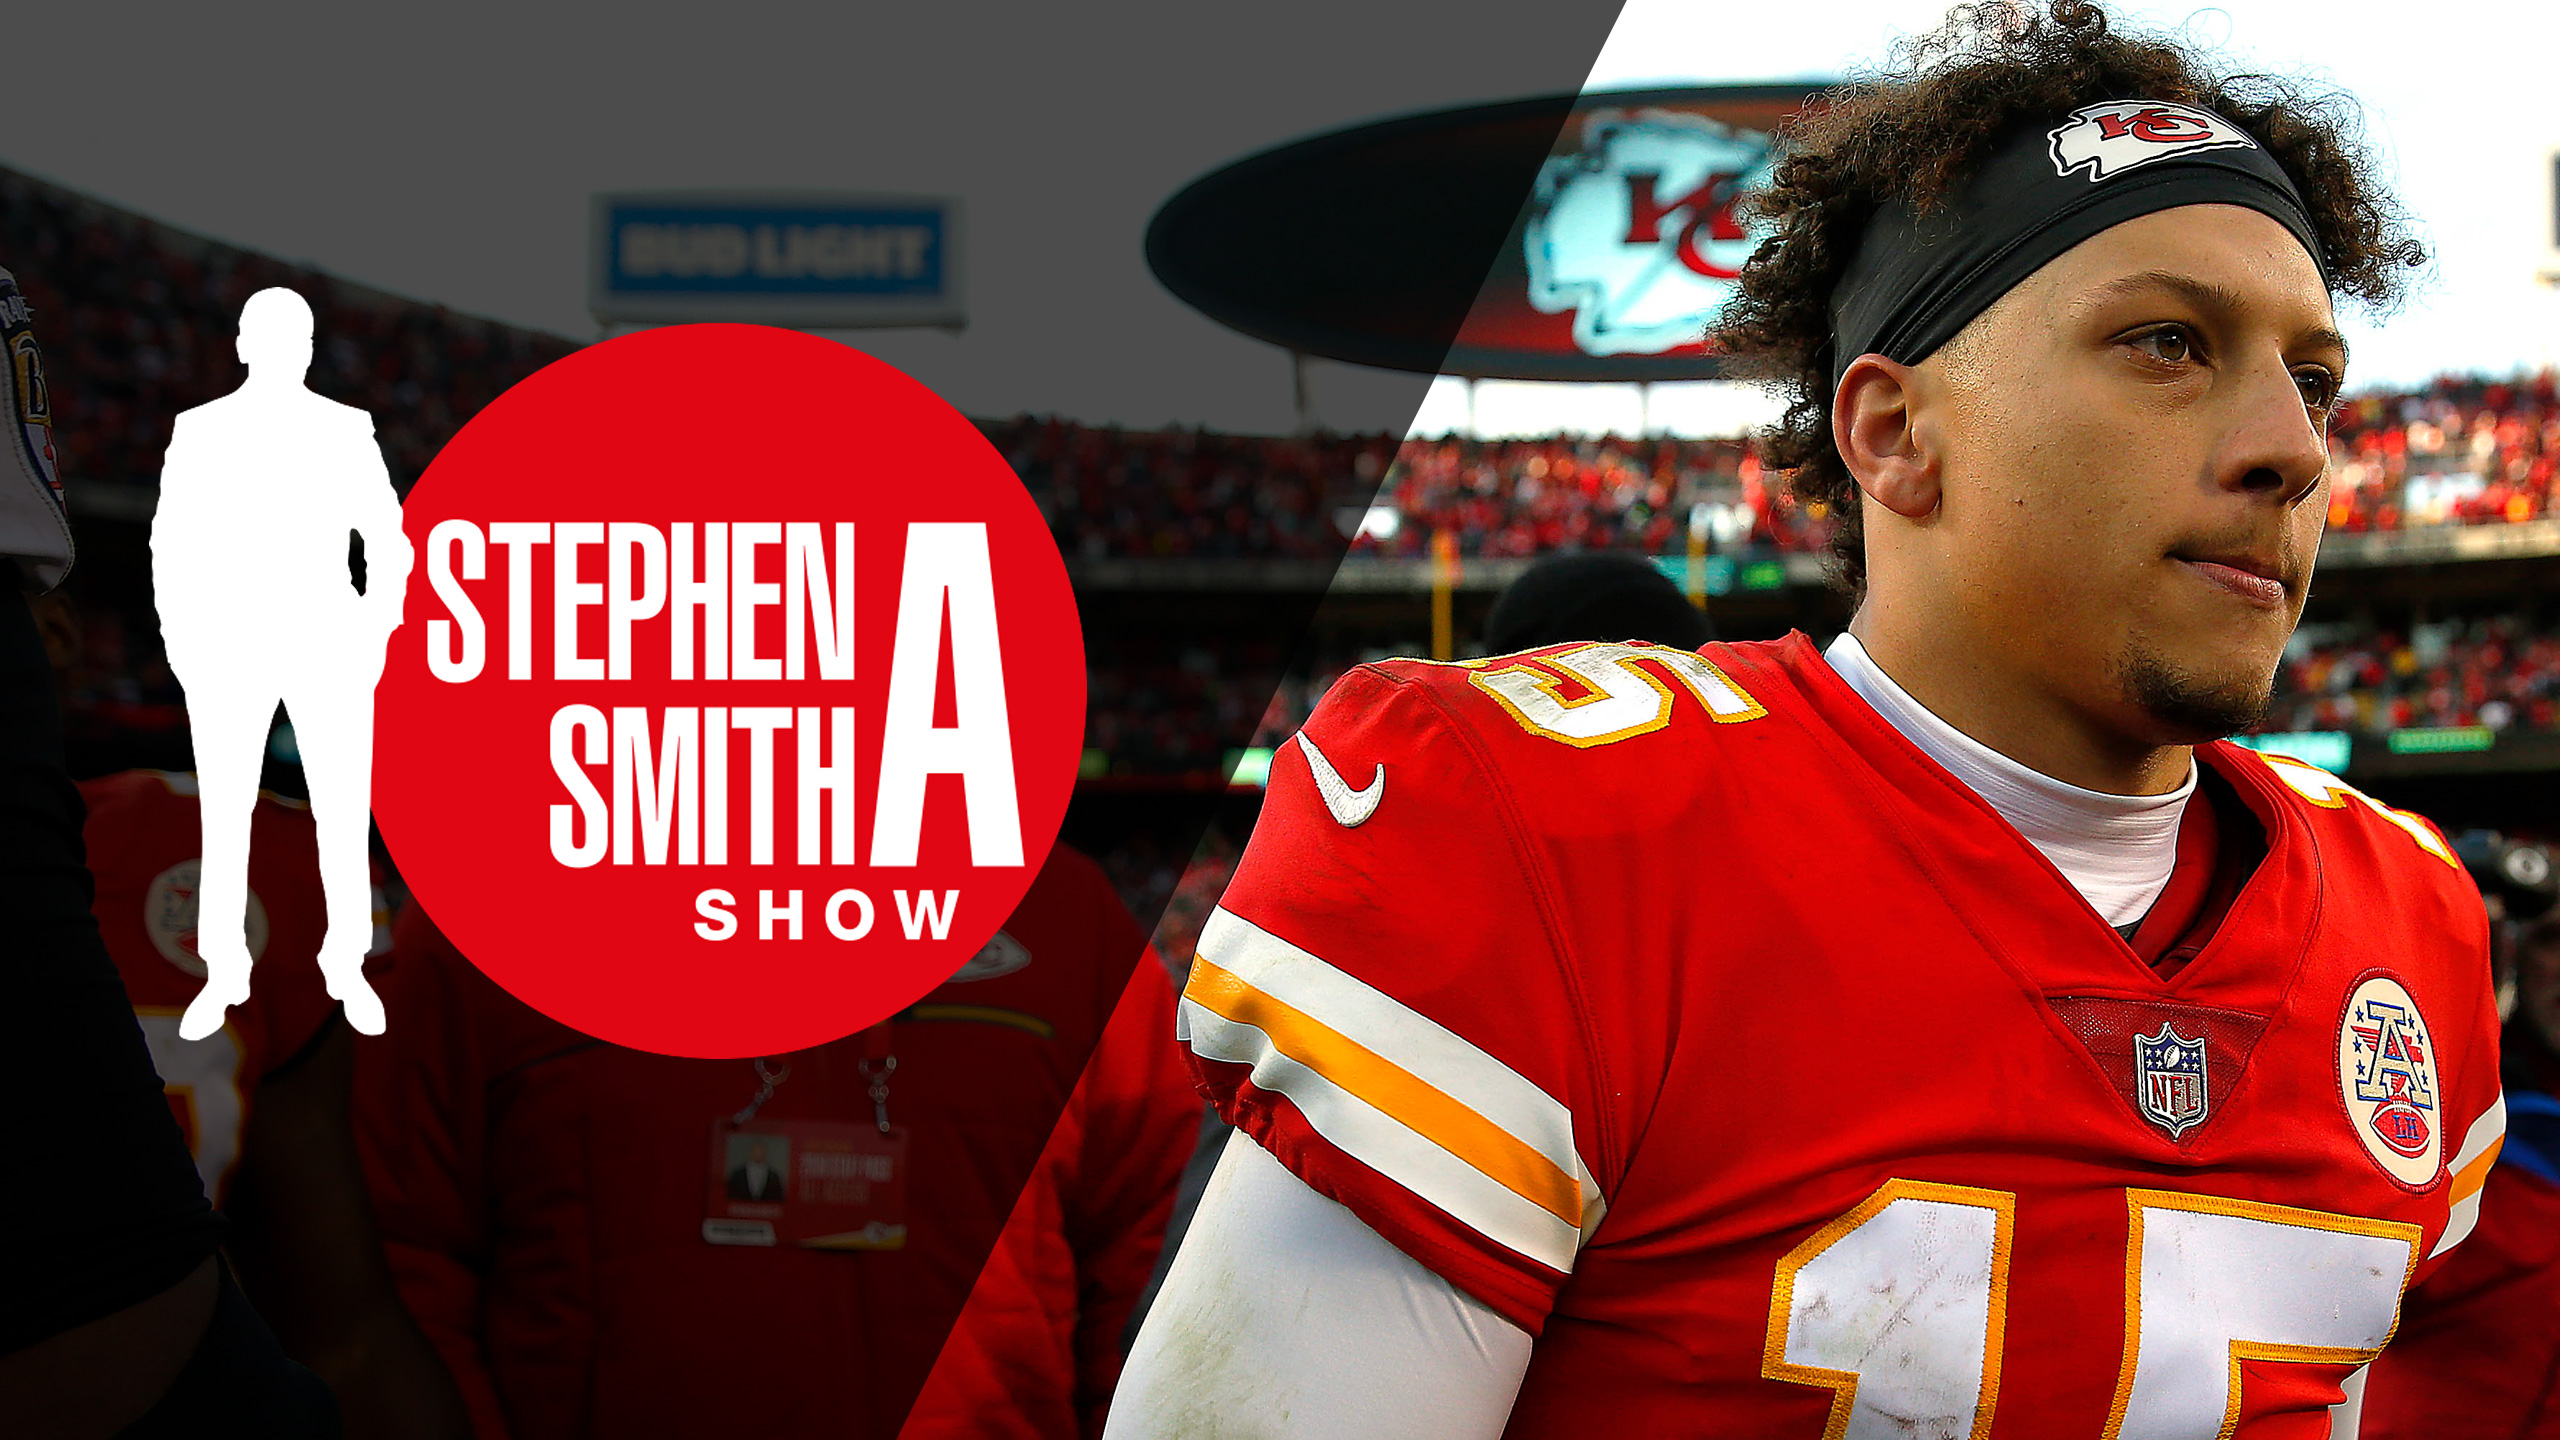 Mon, 12/10 - The Stephen A. Smith Show